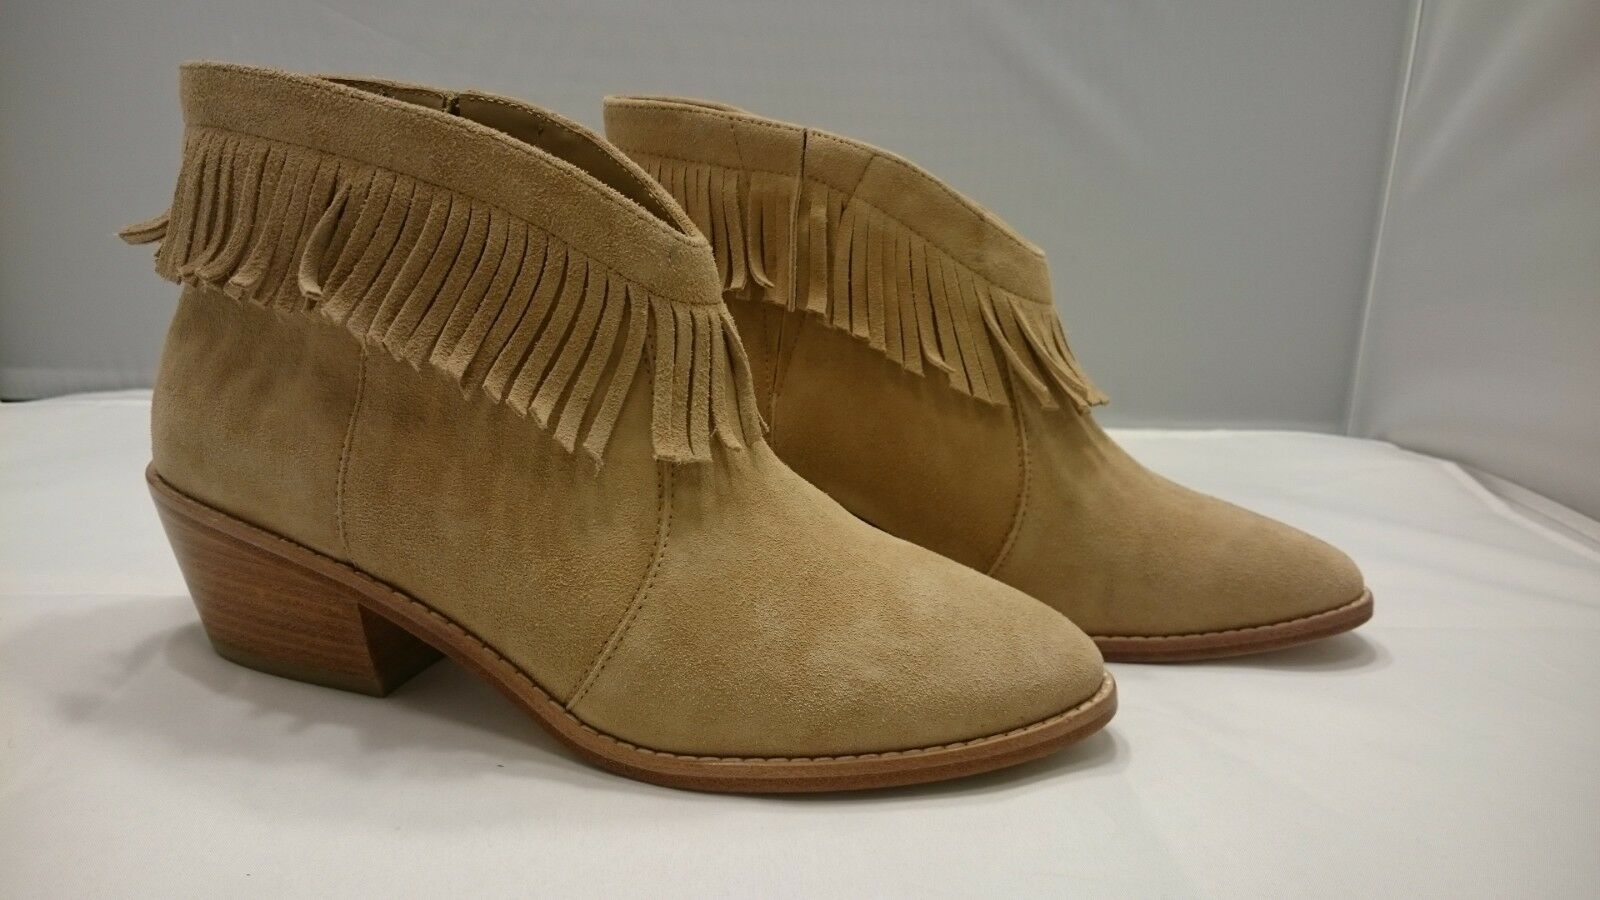 SZ 8 38 NEW NIB Joie Makena Boots SCN-2394 Buff Ankle Fringe Booties shoes Nude